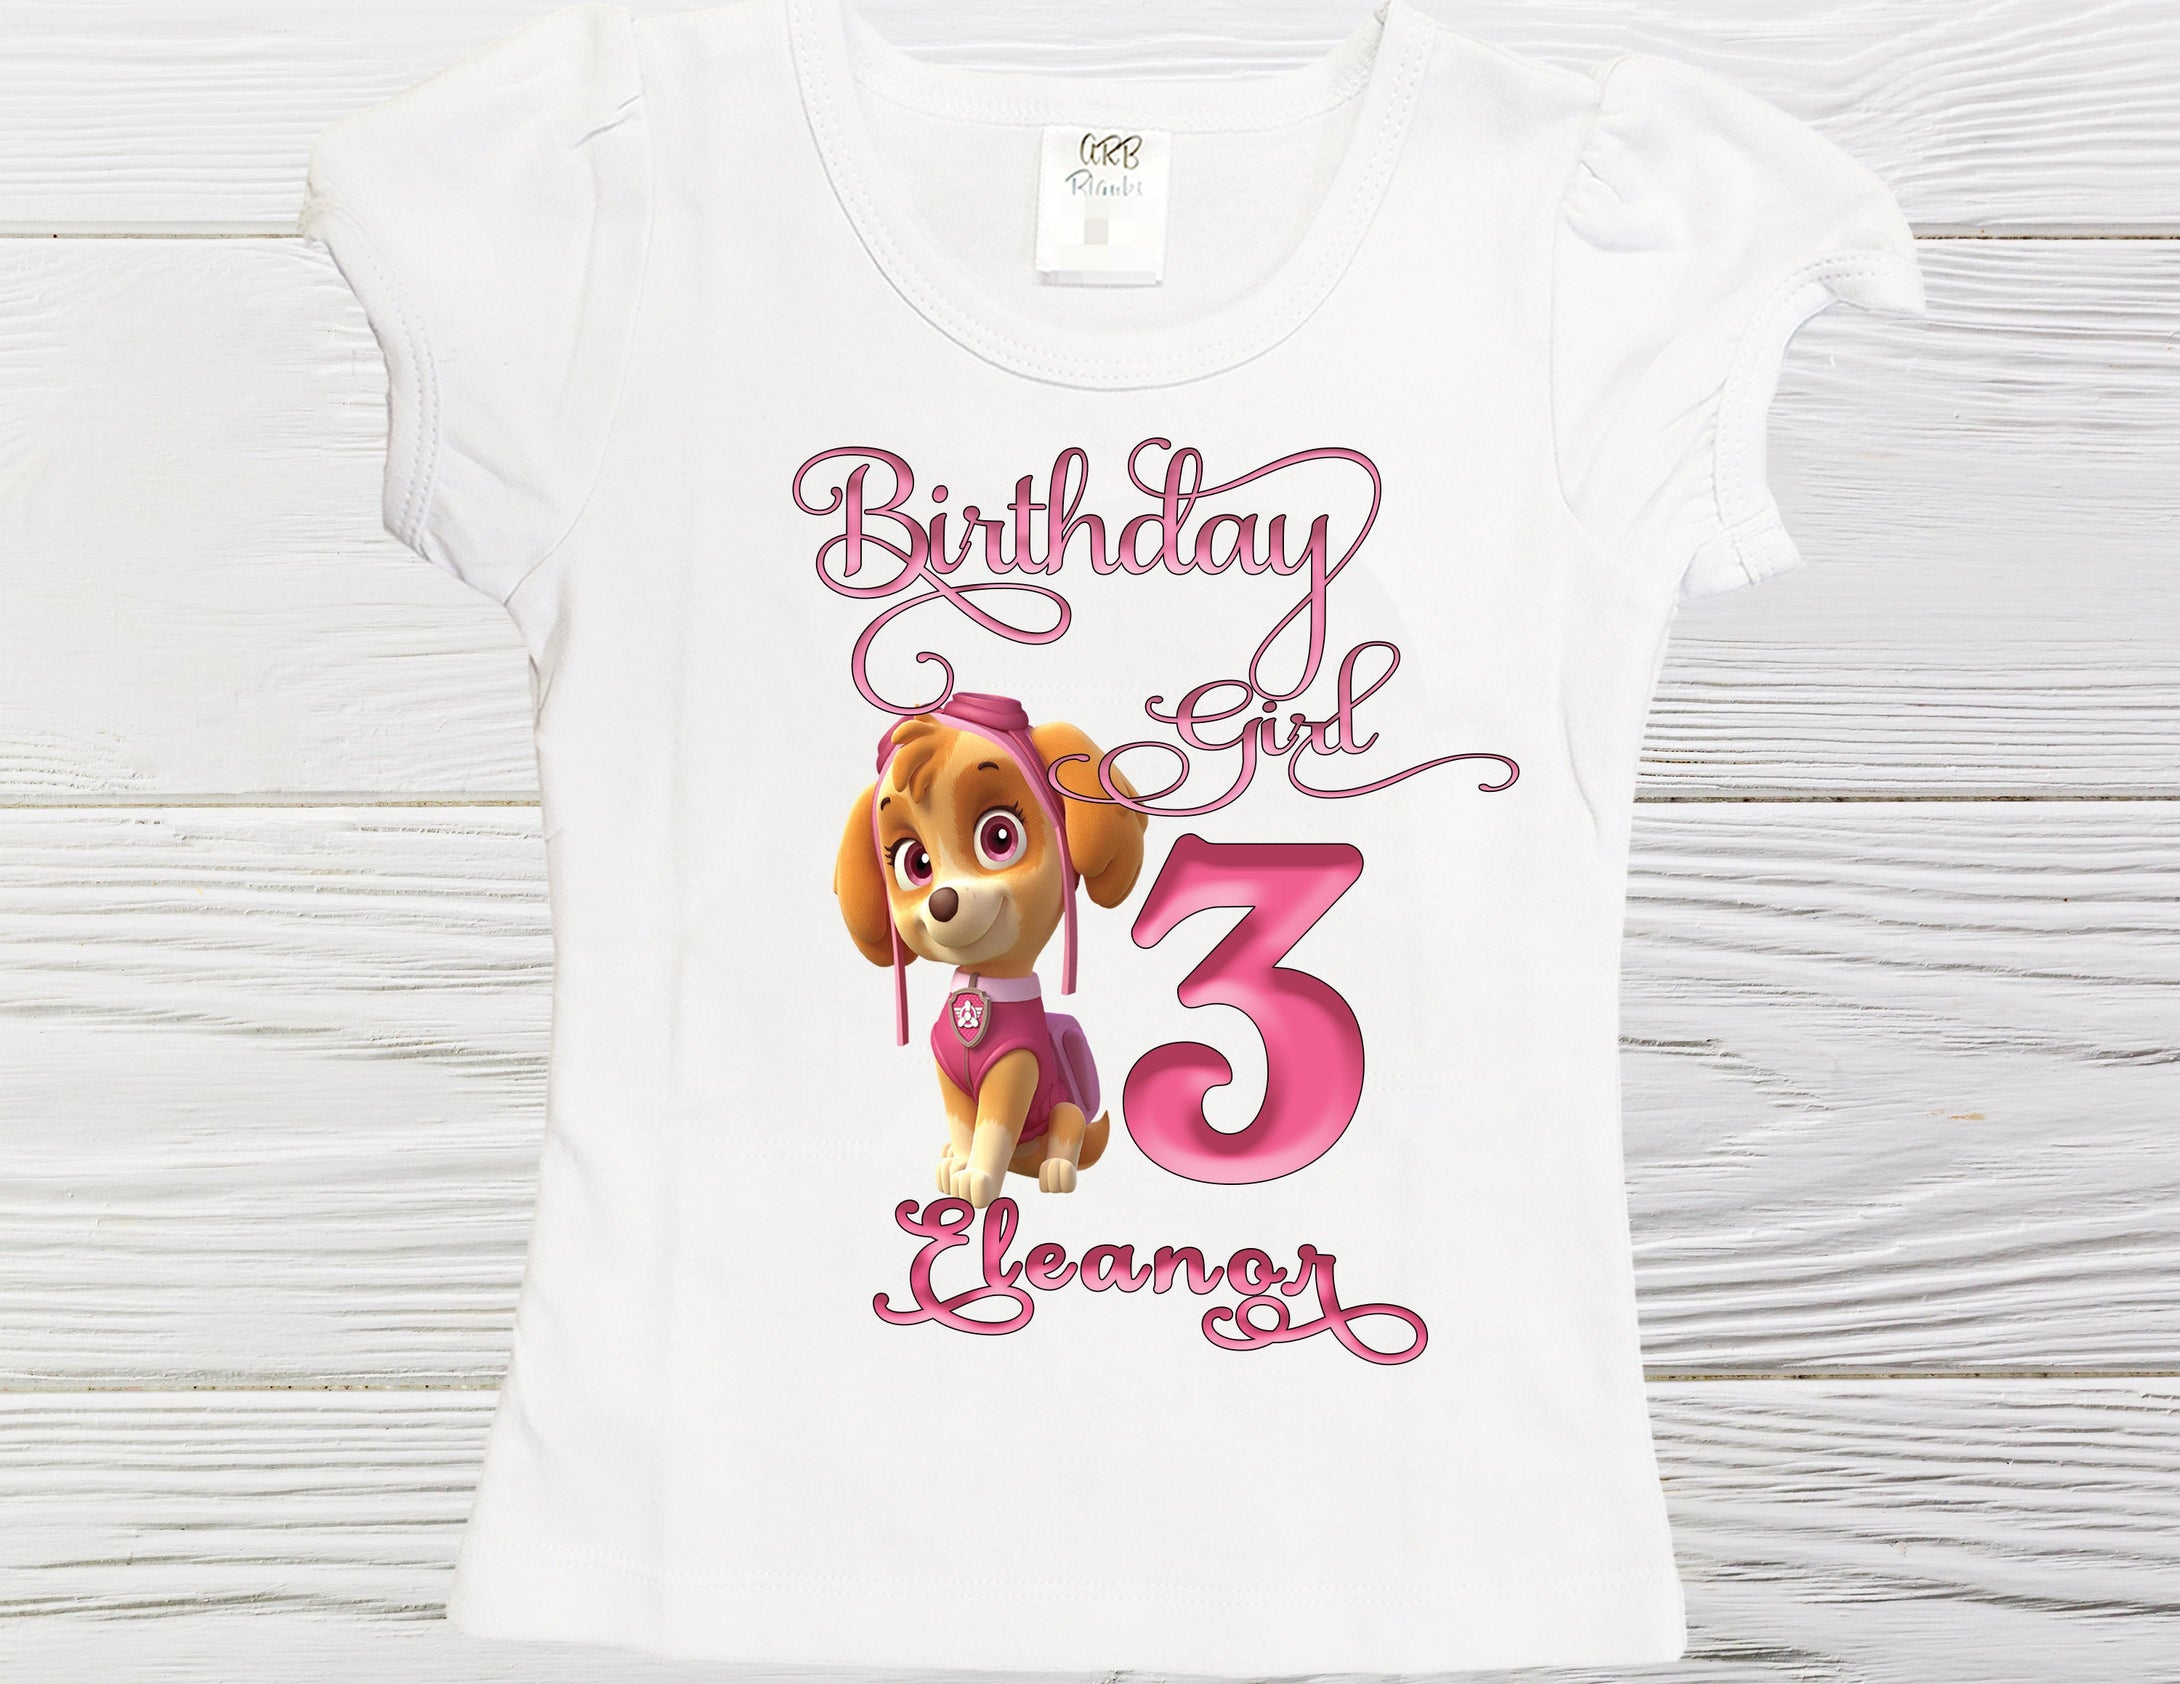 Paw Patrol birthday shirt  - Girls birthday shirt - Skye shirt - Personalized Skye birthday shirt - Toddler Skye shirt - Birthday Skye shirt